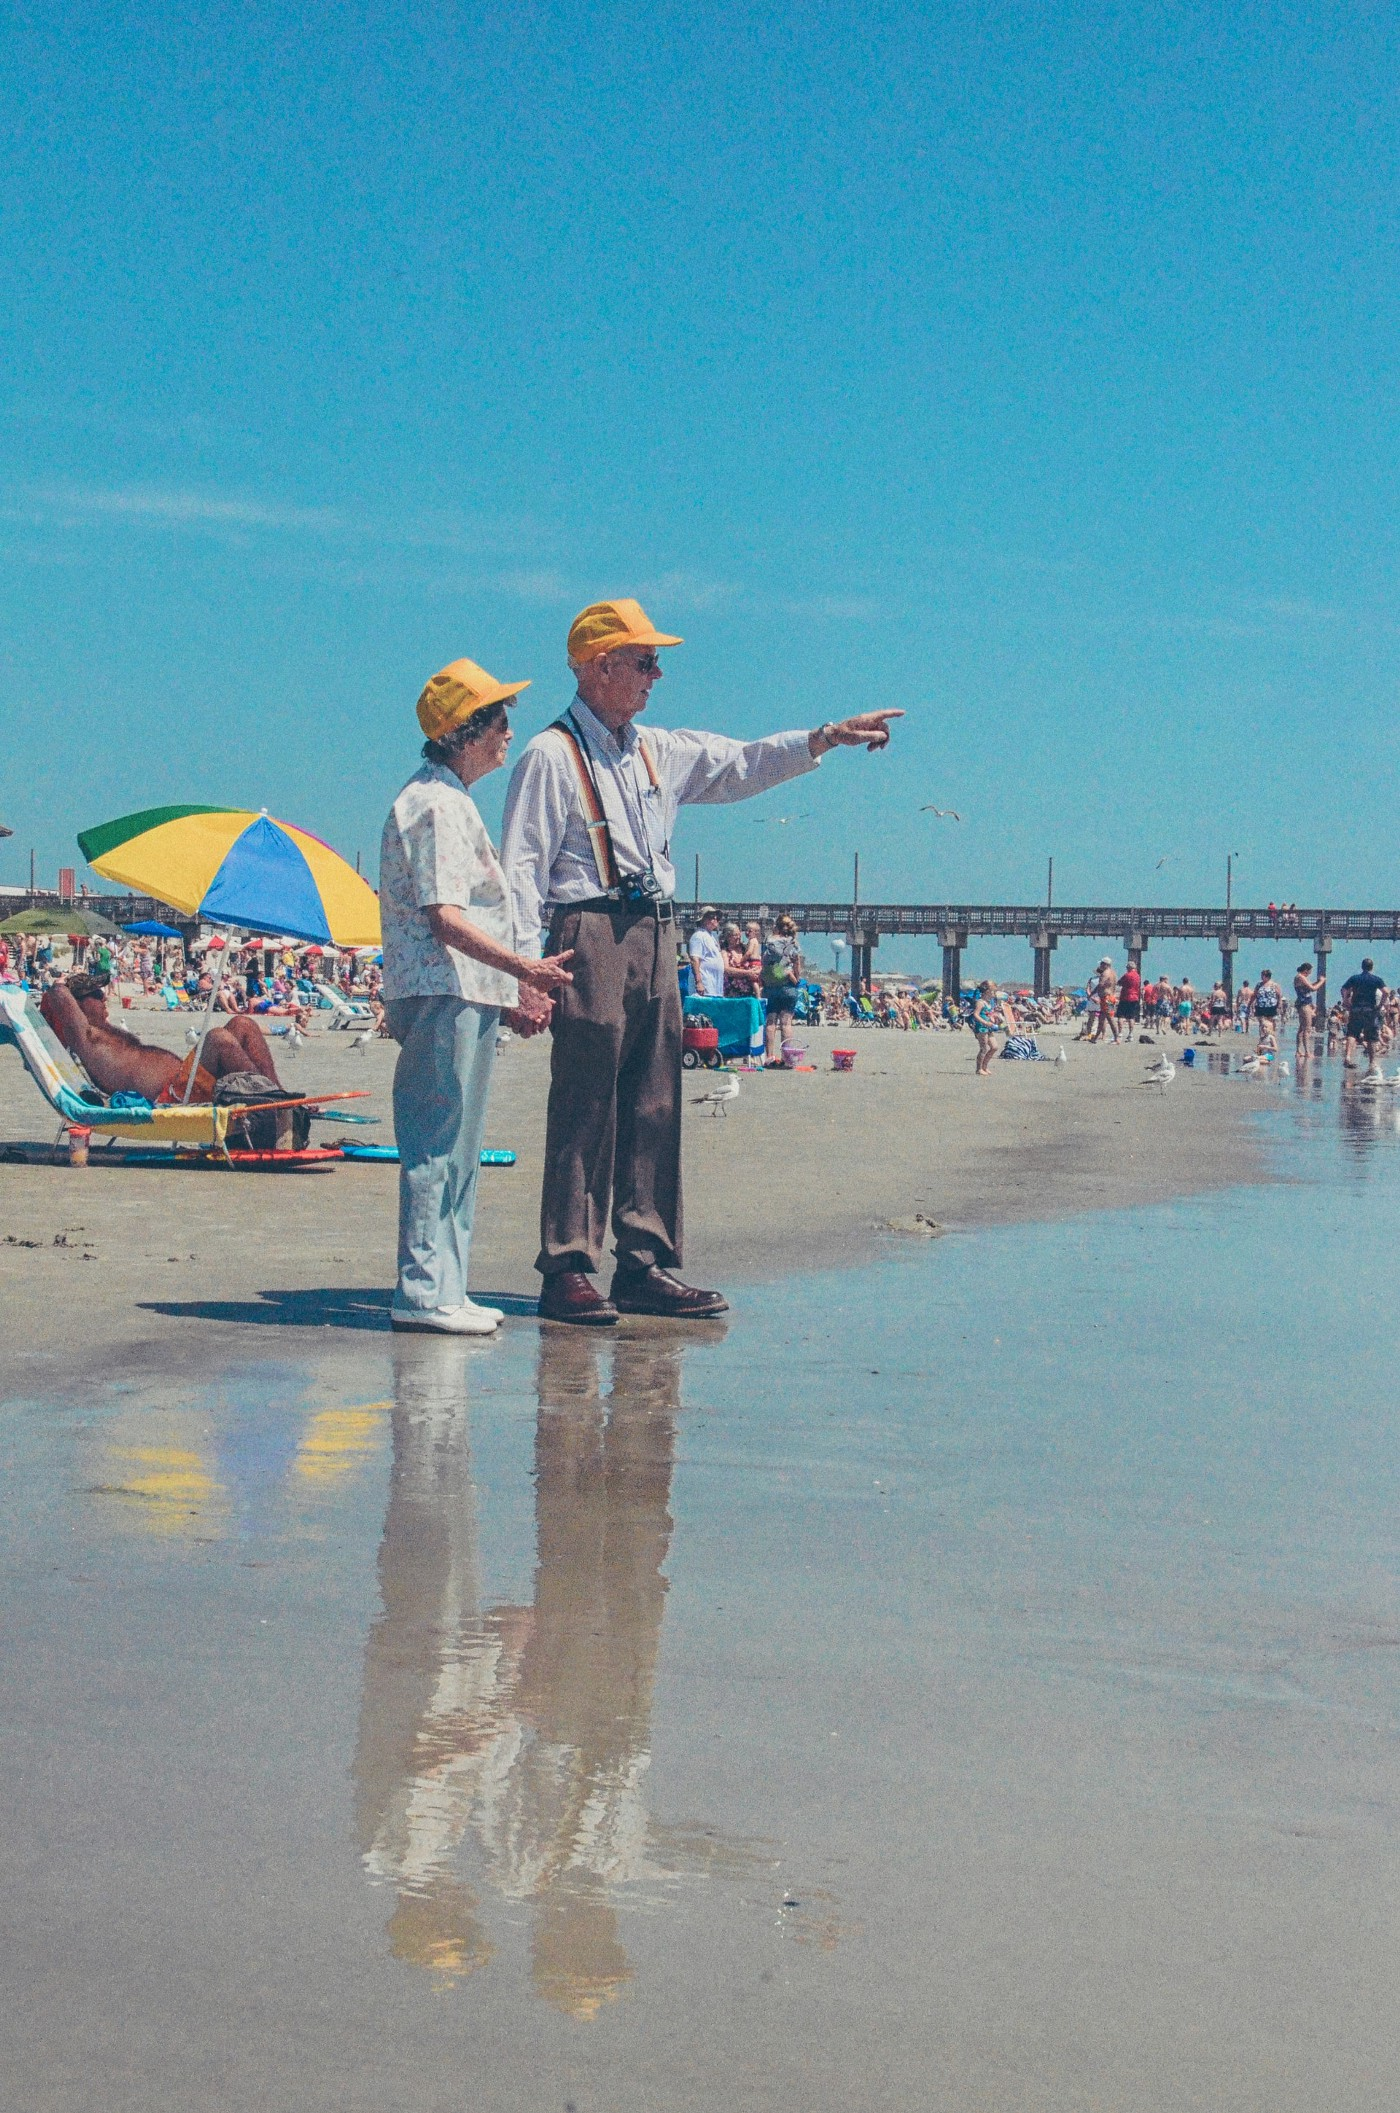 Old man and wife at beach wearing yellow hats